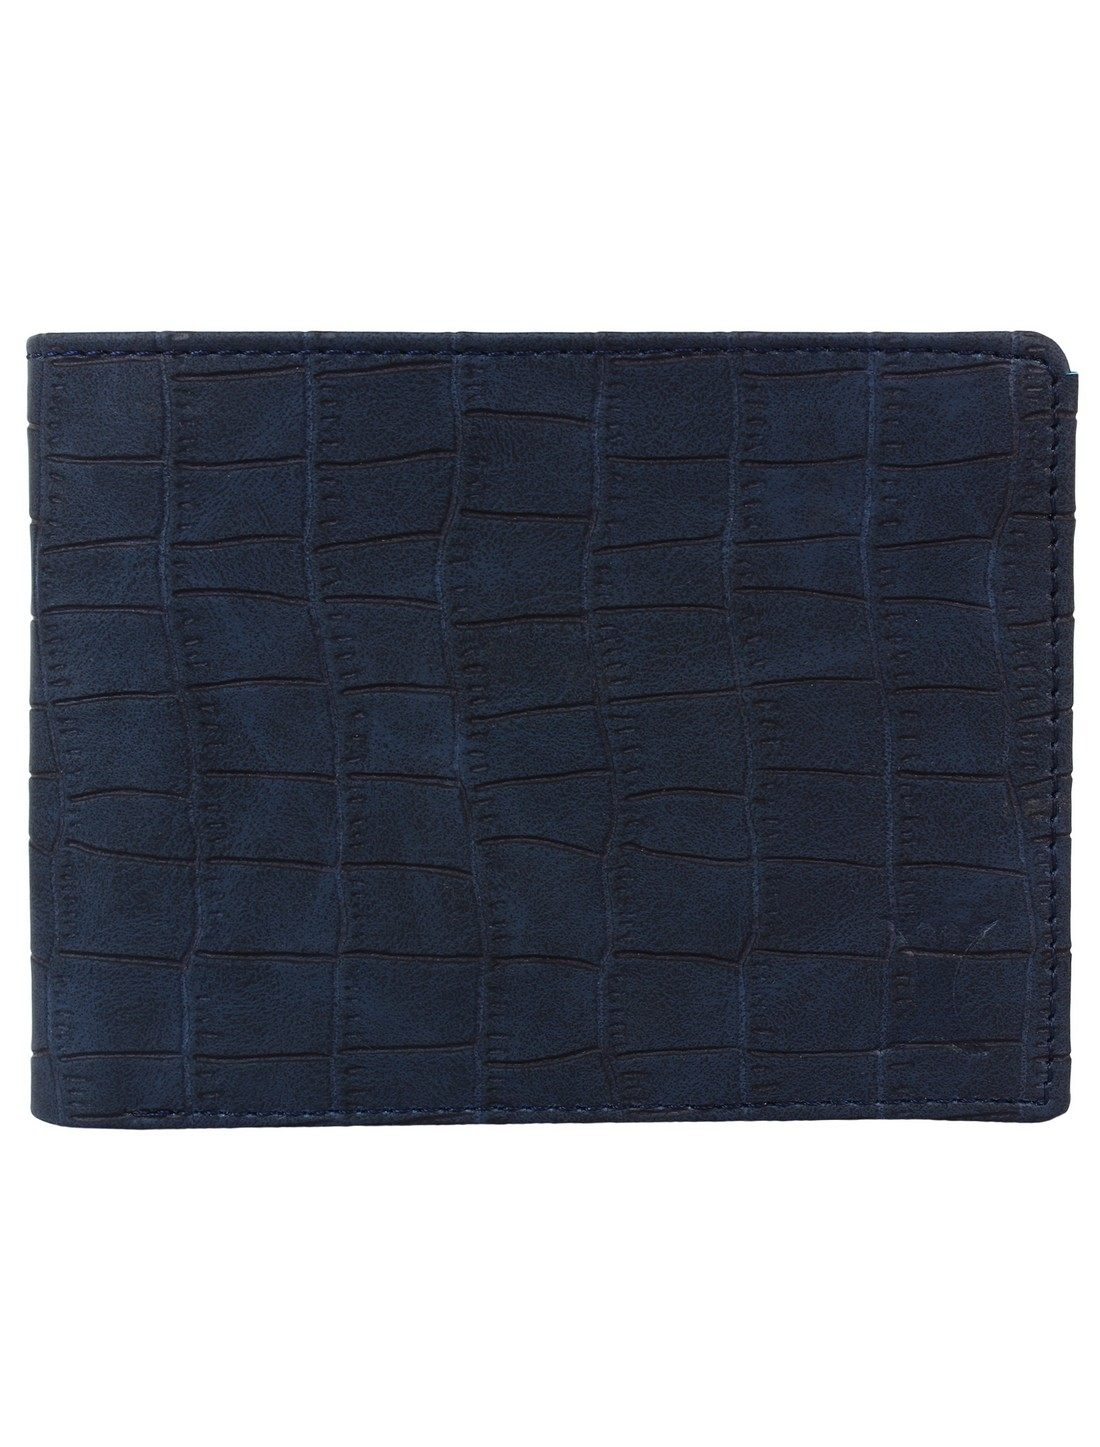 CREATURE   CREATURE Embossed Blue PU Leather Wallet with Zip for Men